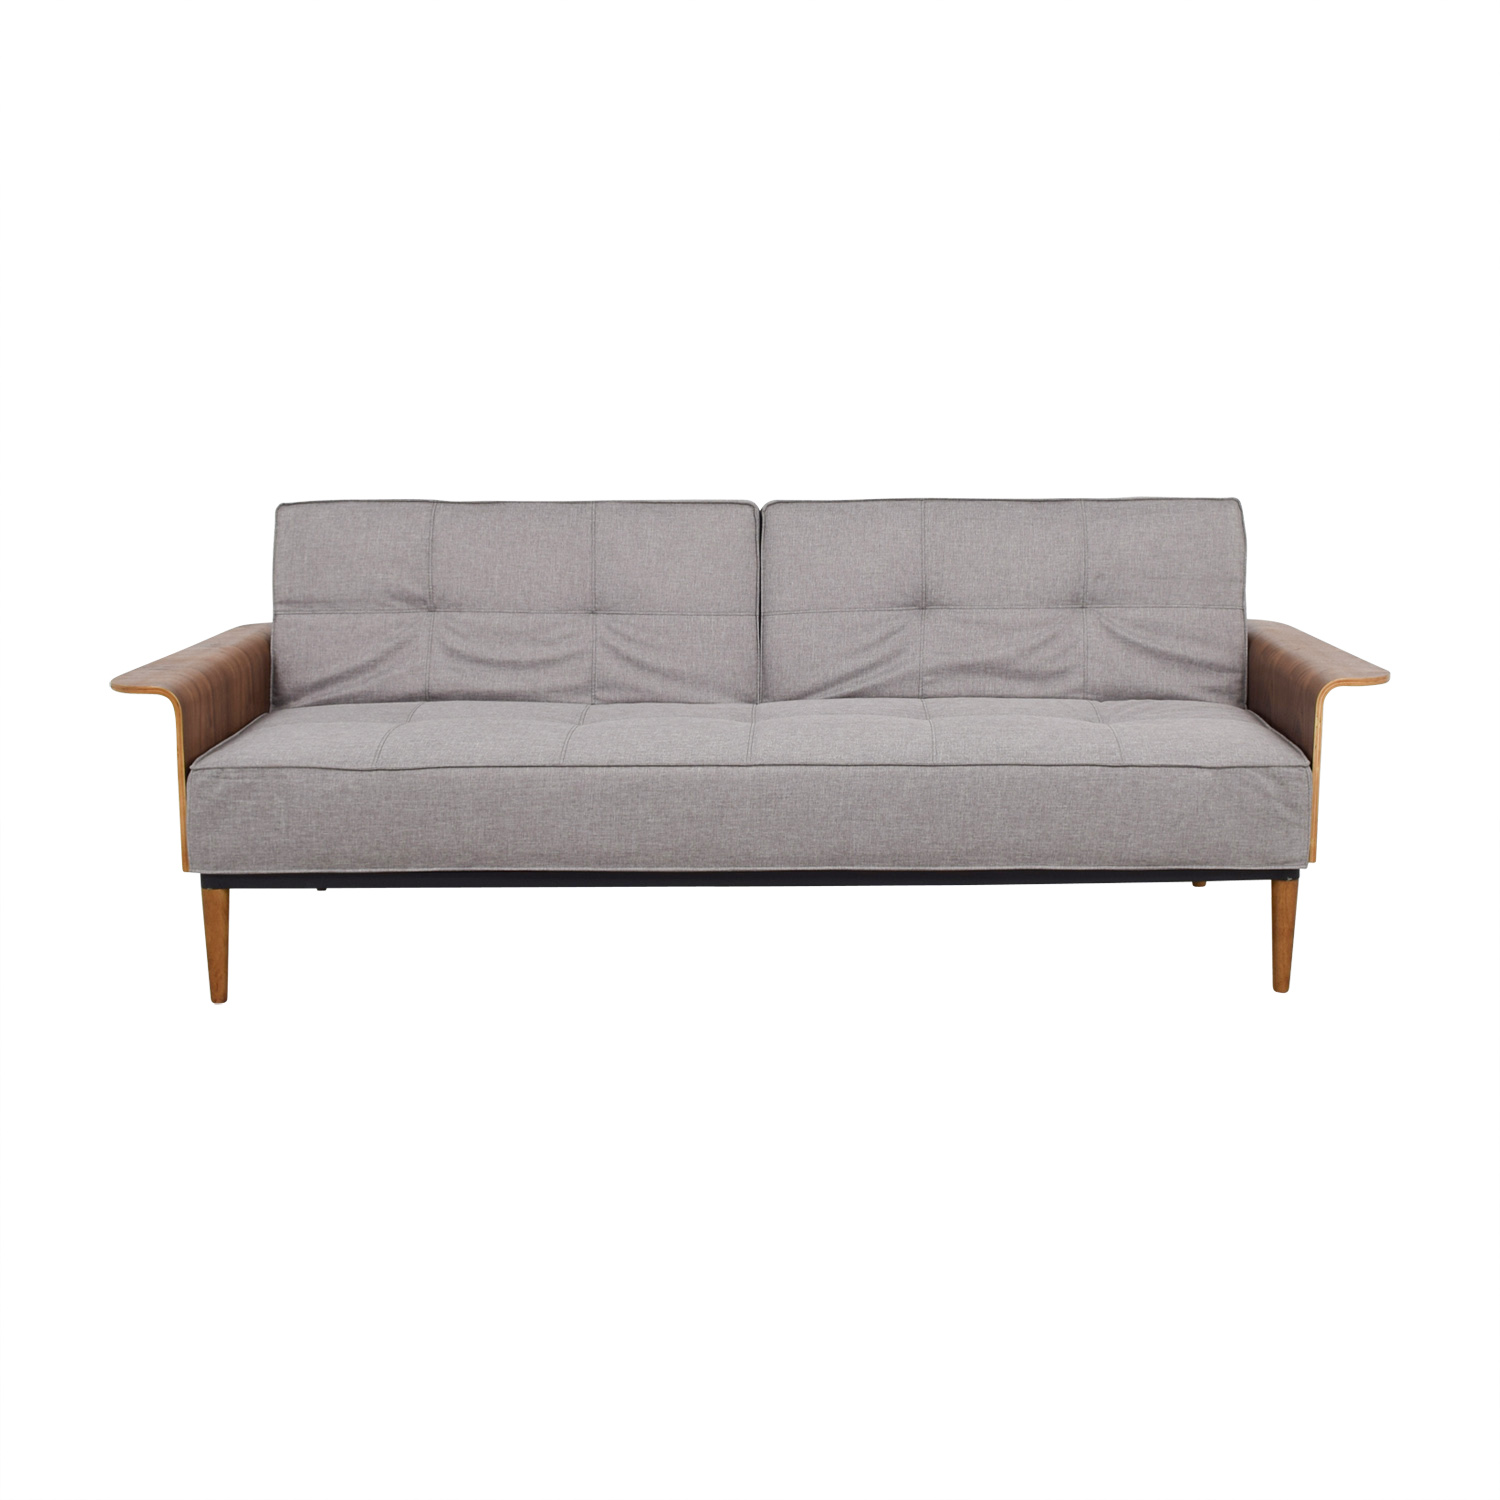 shop Inmod Bjorg Tufted Light Grey Sofabed Inmod Sofas